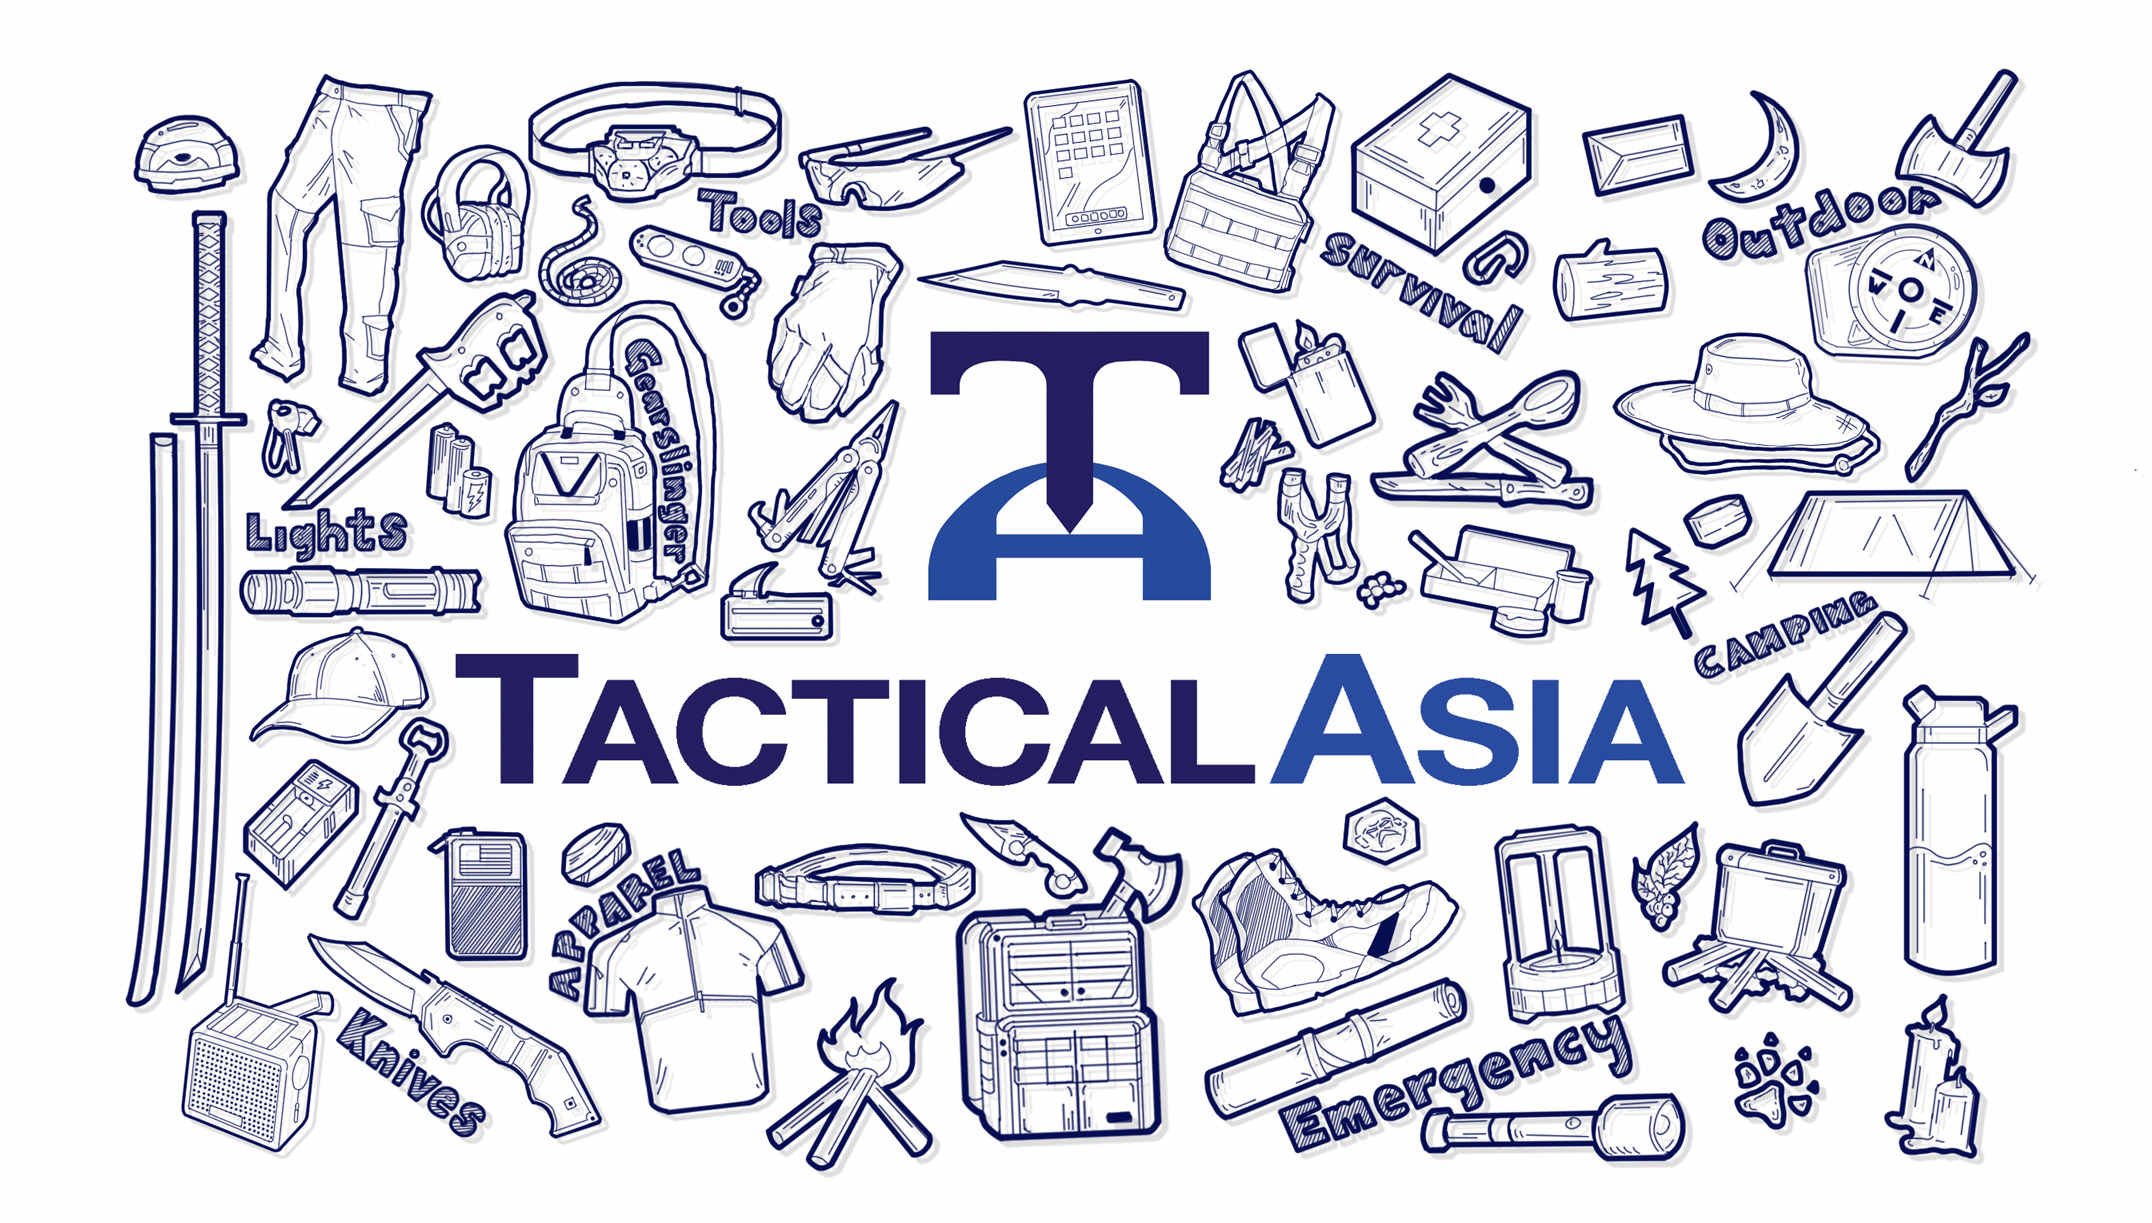 About Tactical Asia